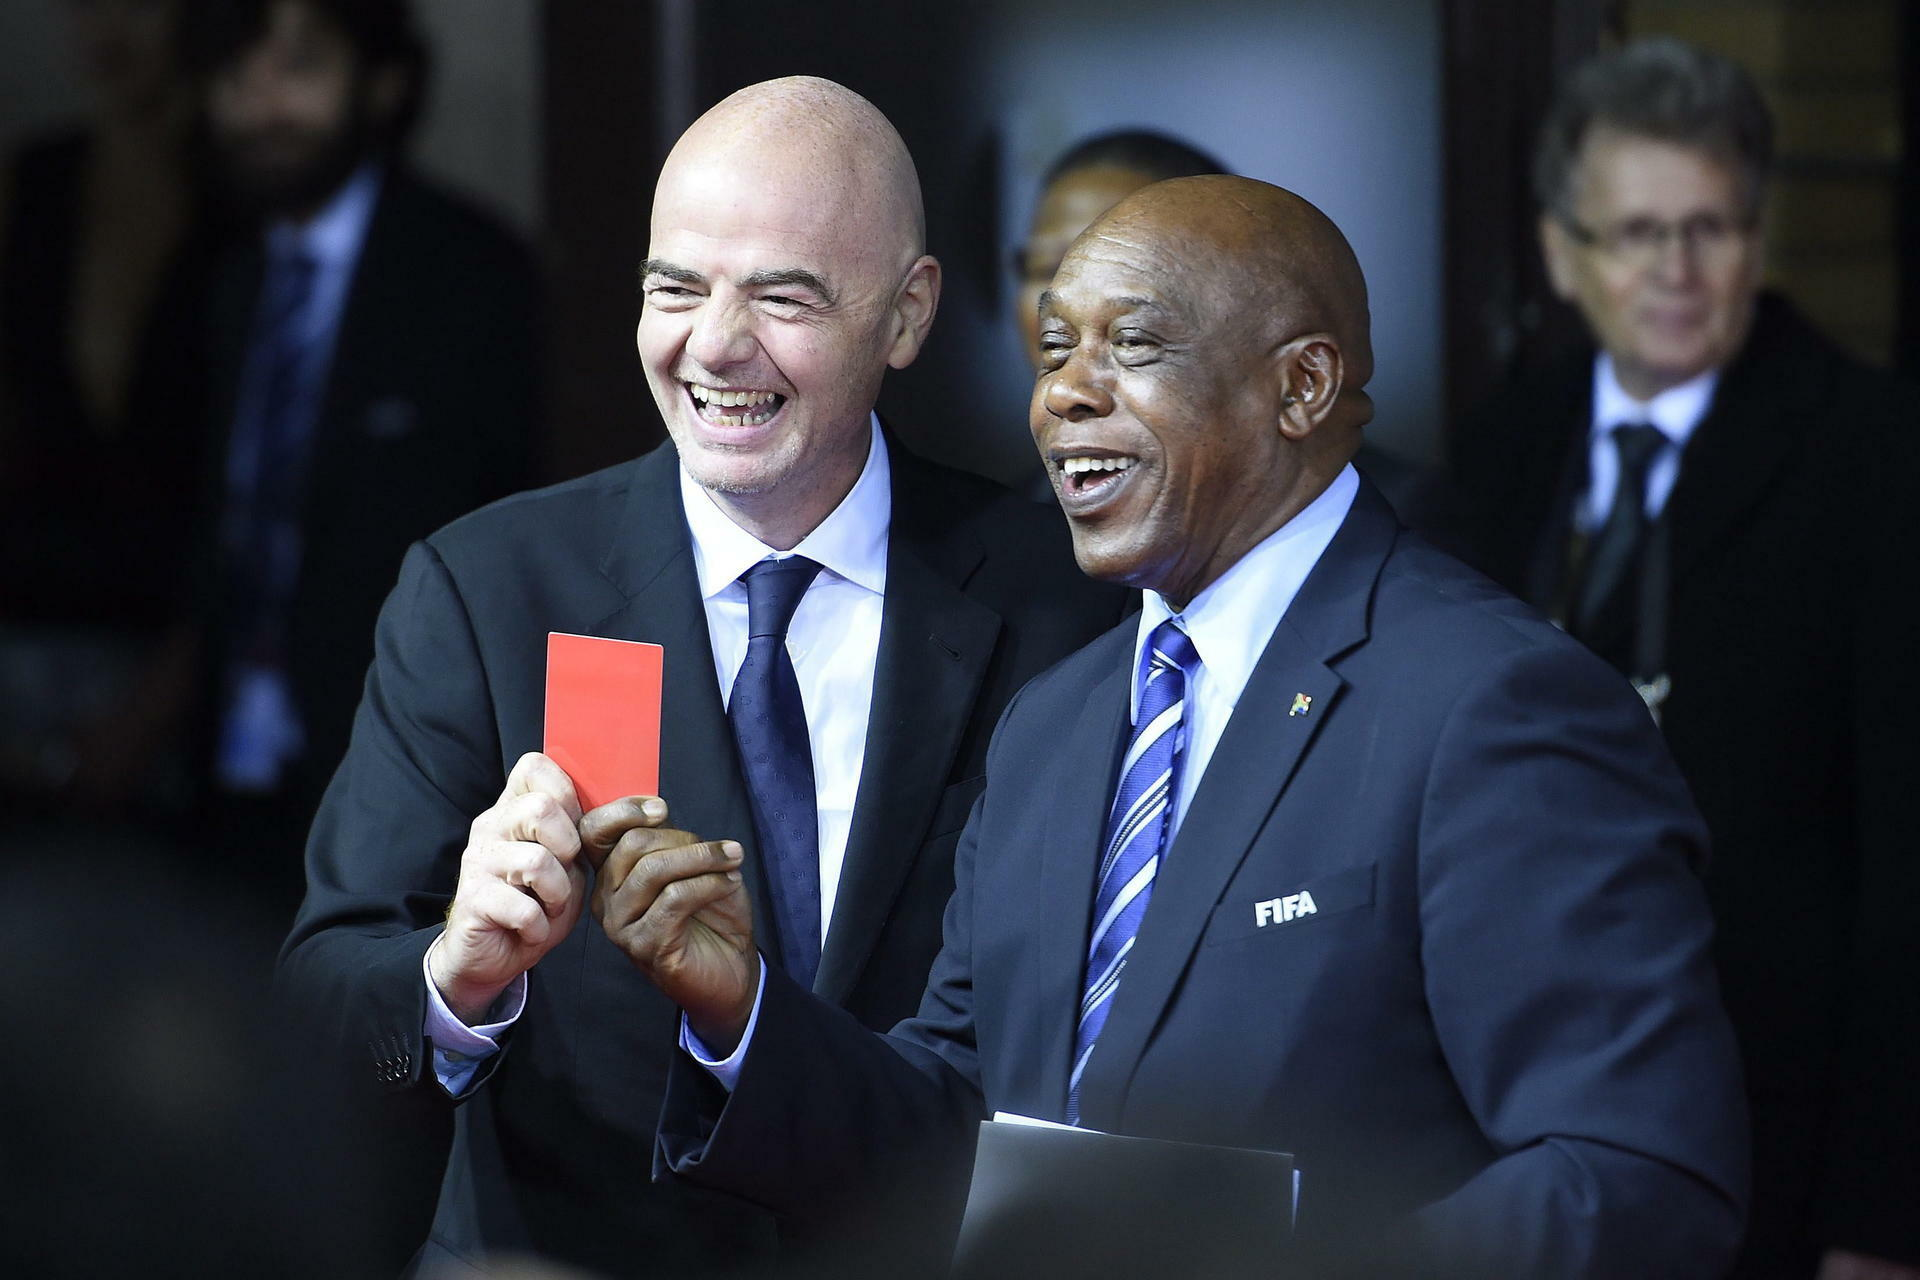 epa05098157 A photograph made available on 12 January 2016 showing UEFA General Secretary Gianni Infantino, (L), and FIFA presidential candidate Tokyo Sexwale, (R), arriving on the red carpet and holding up the red card prior to the FIFA Ballon d'Or awarding ceremony at the Kongresshaus in Zurich, Switzerland, 11 January 2016. EPA/VALERIANO DI DOMENICO +++(c) dpa - Bildfunk+++ Quelle: dpa